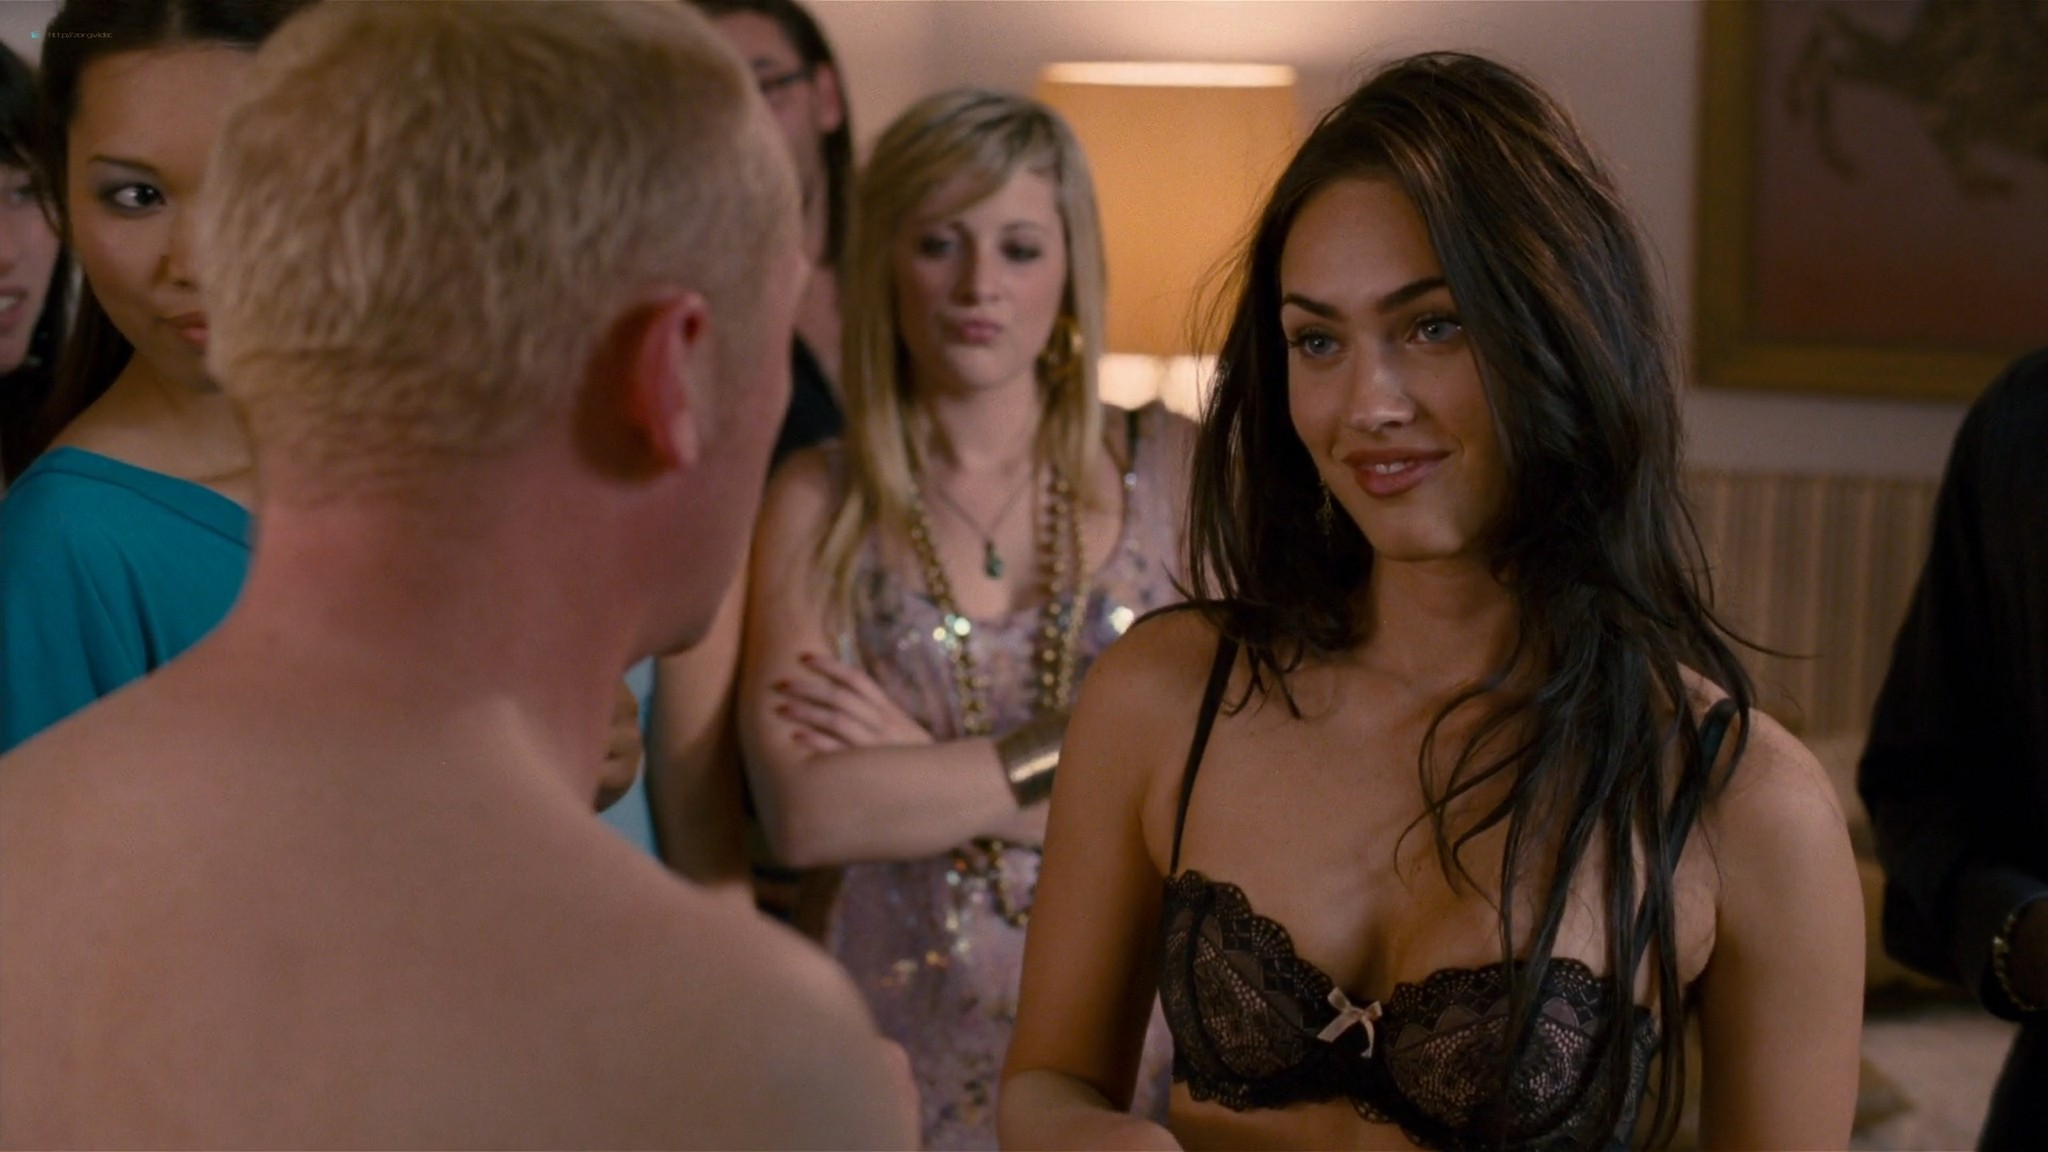 Megan Fox hot wet - How to Lose Friends and Alienate People (2008) HD 1080p BluRay (3)